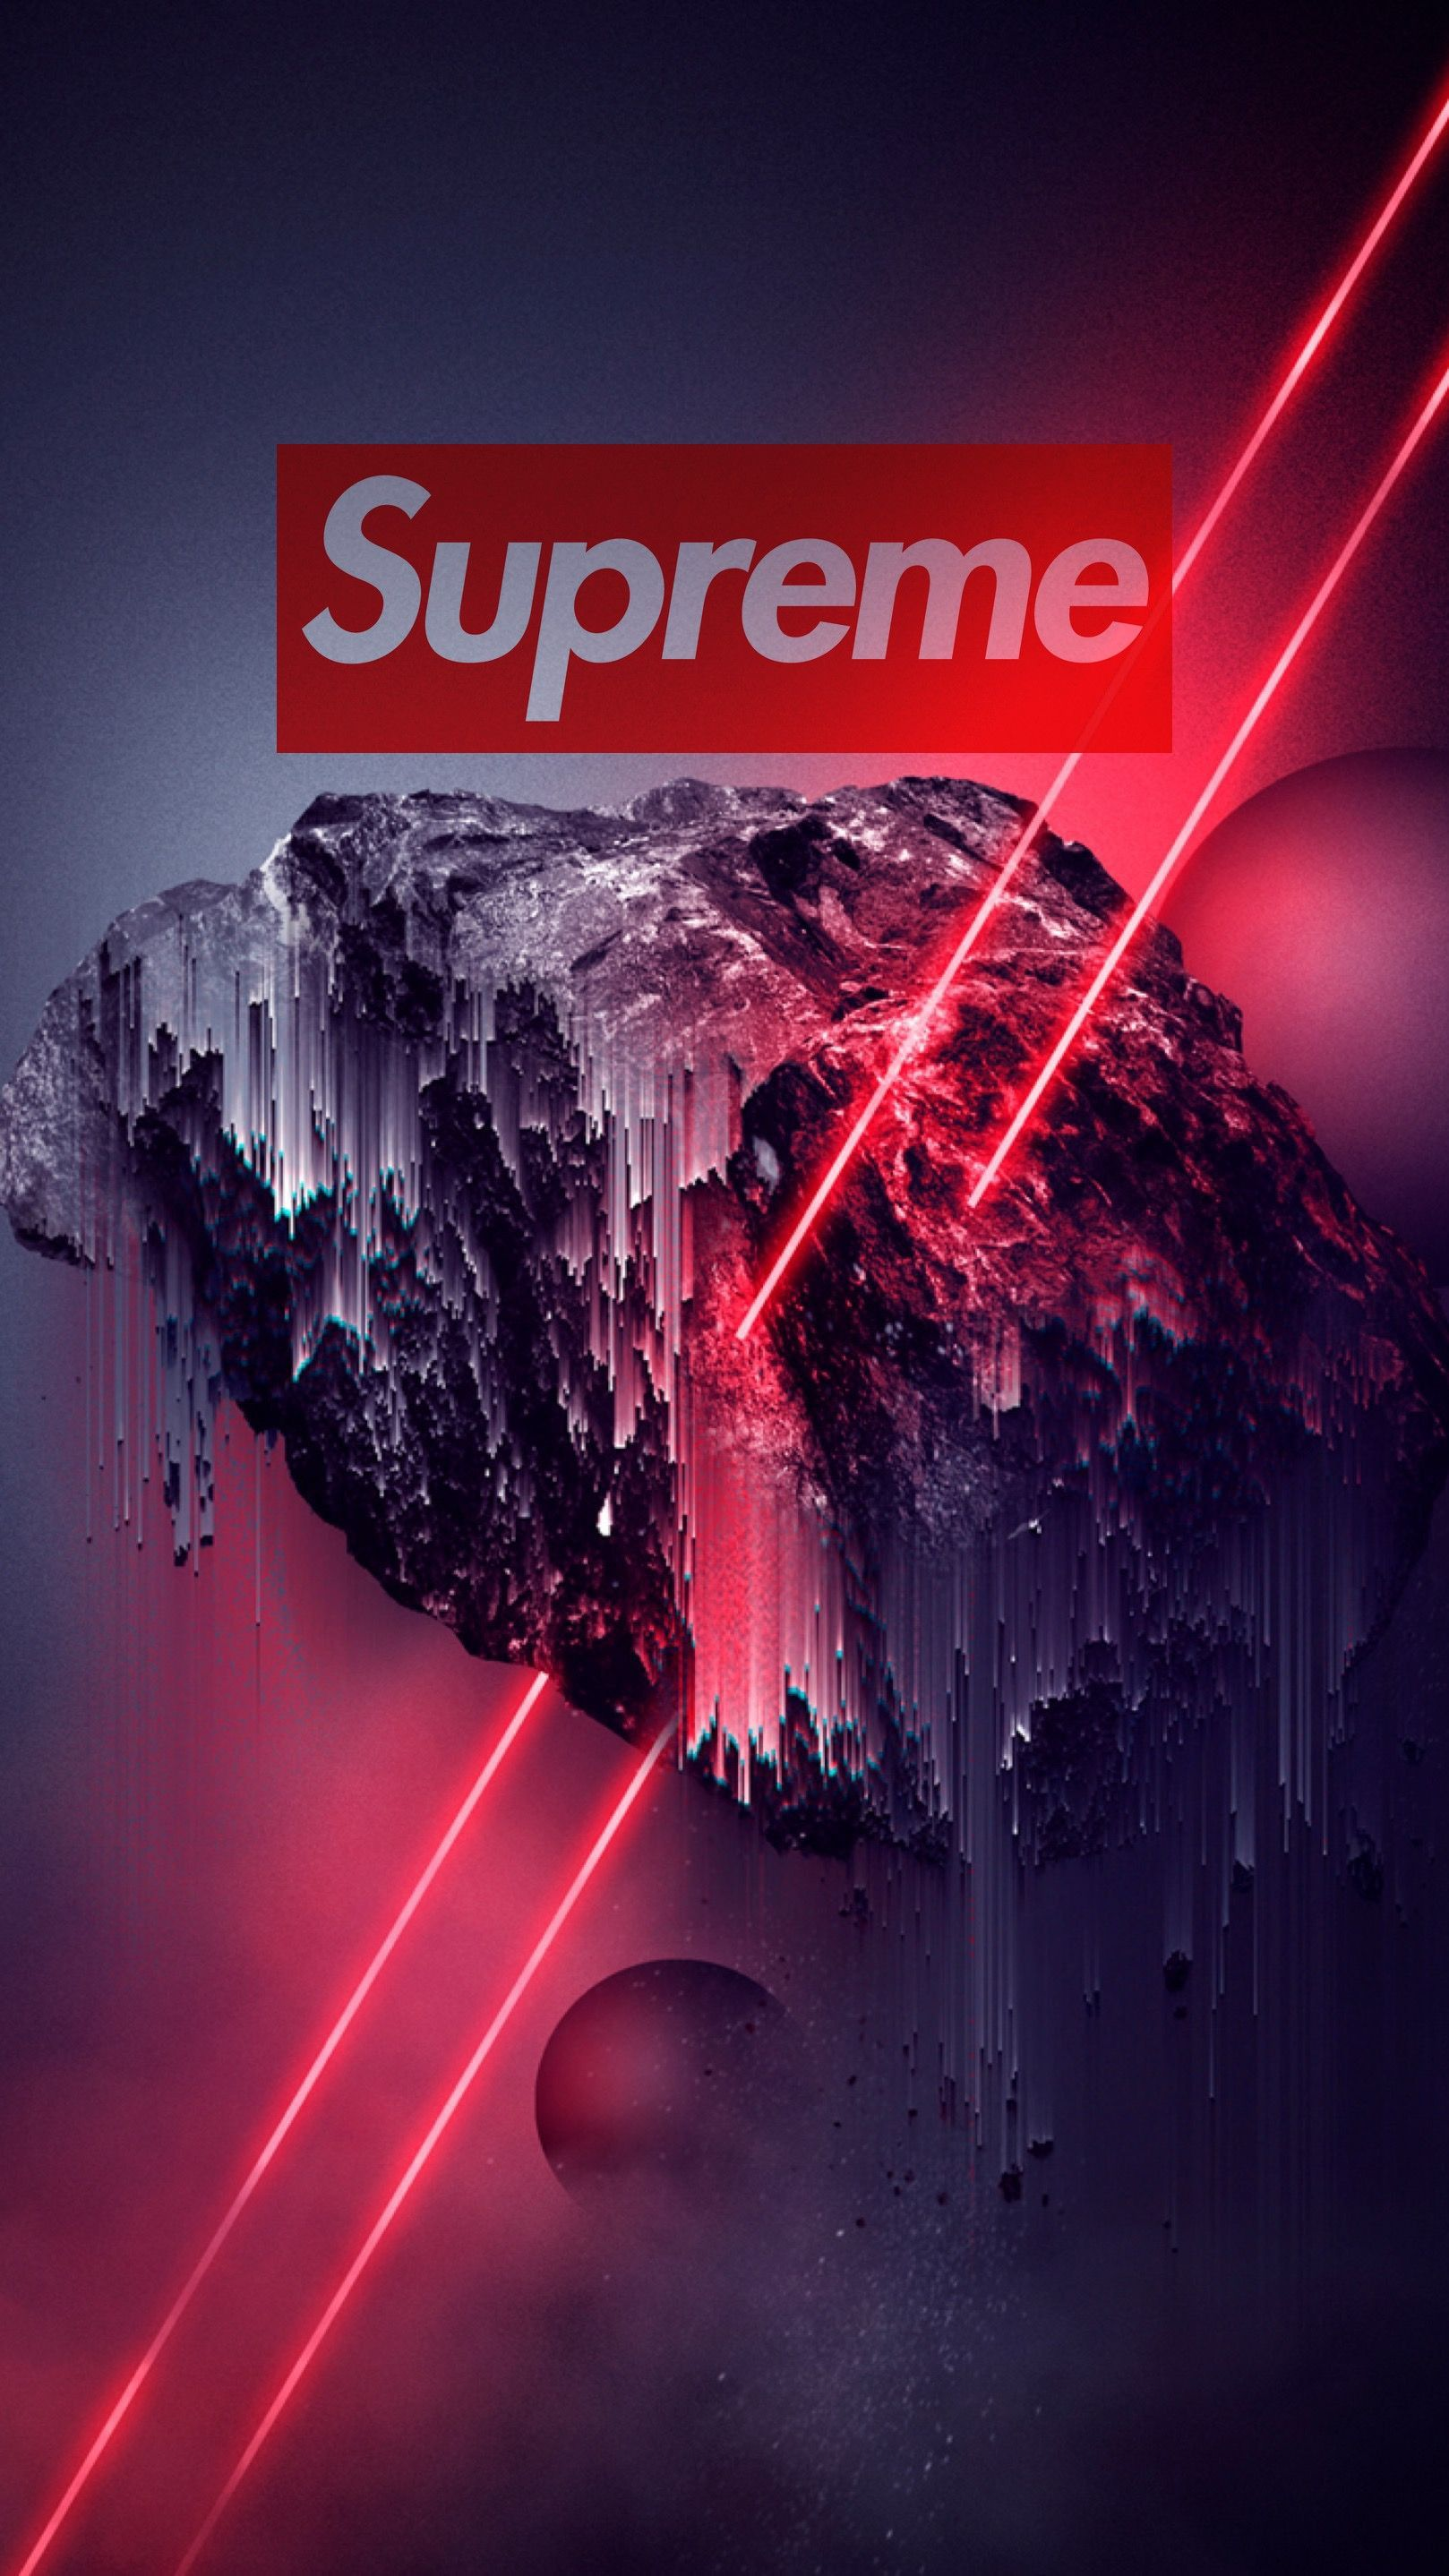 Awesome Cool Supreme Backgrounds In 2020 Supreme Wallpaper Supreme Iphone Wallpaper Crazy Wallpaper